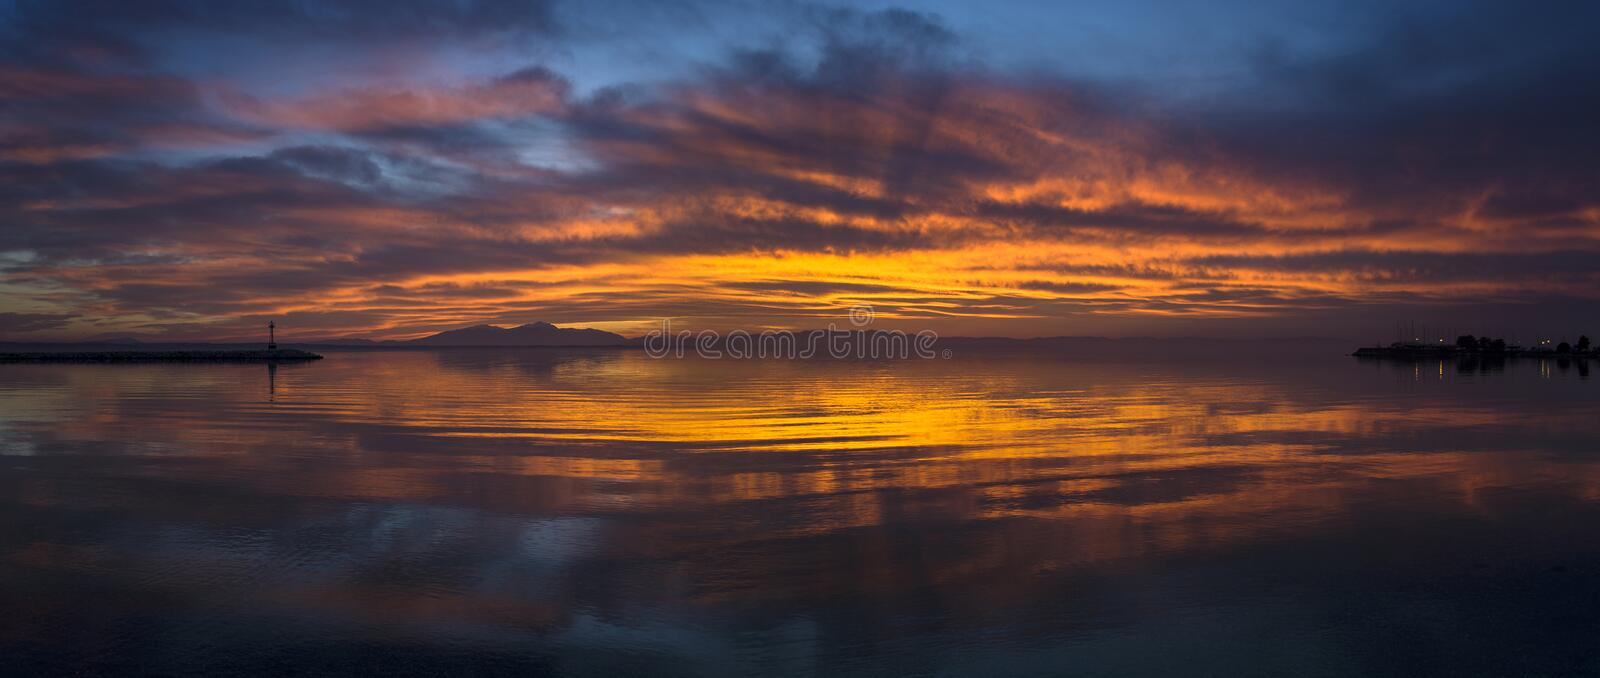 EPIC SUNSET WITH OLYMPUS MOUNTAIN AT THE BACKGROUND stock photo